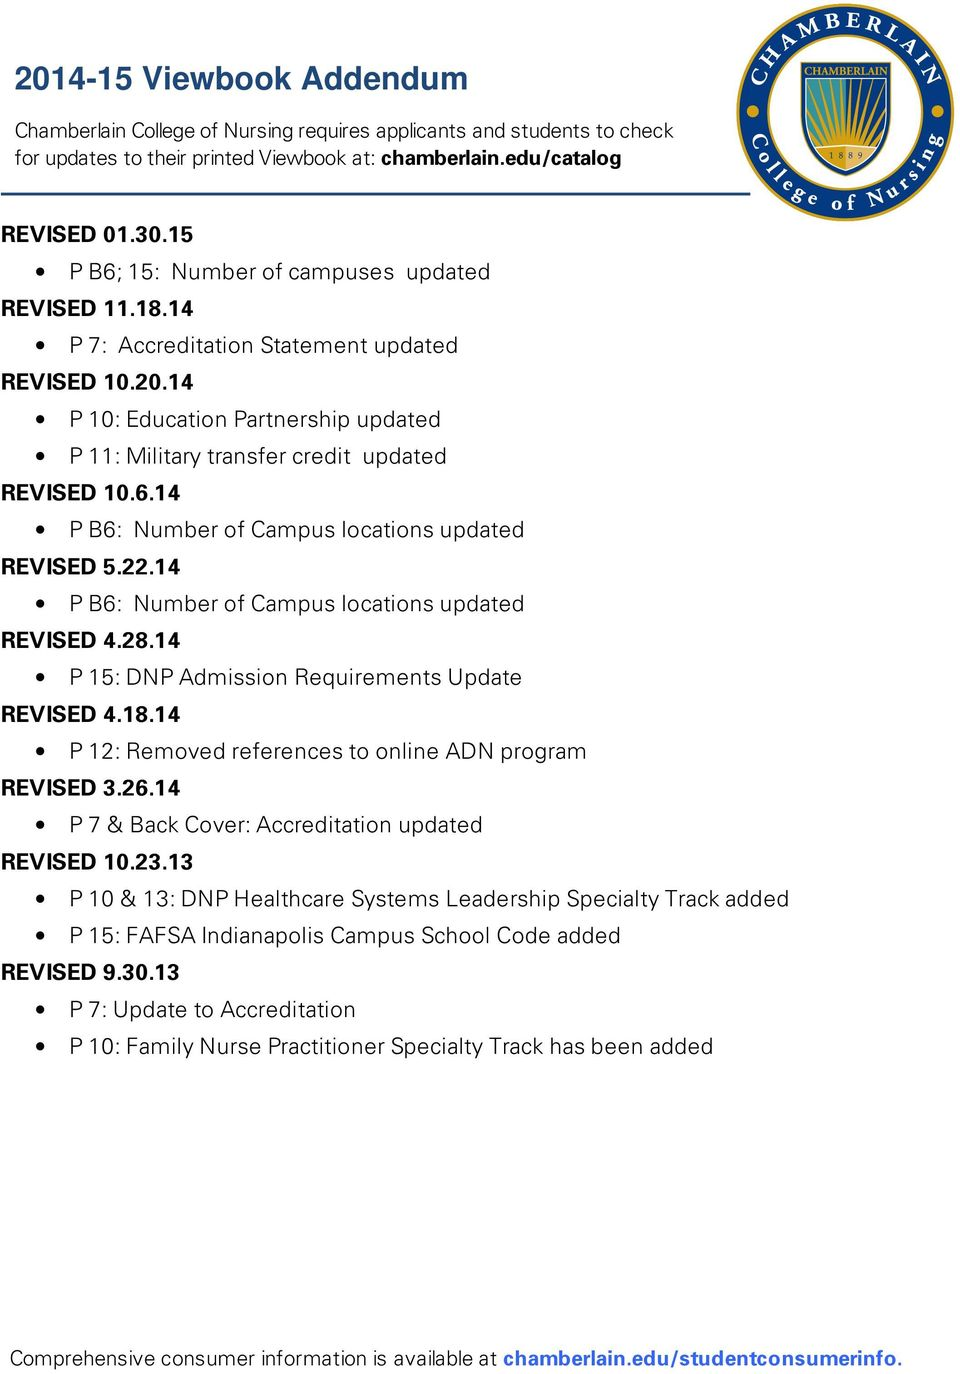 22.14 P B6: Number of Campus locations updated REVISED 4.28.14 P 15: DNP Admission Requirements Update REVISED 4.18.14 P 12: Removed references to online ADN program REVISED 3.26.